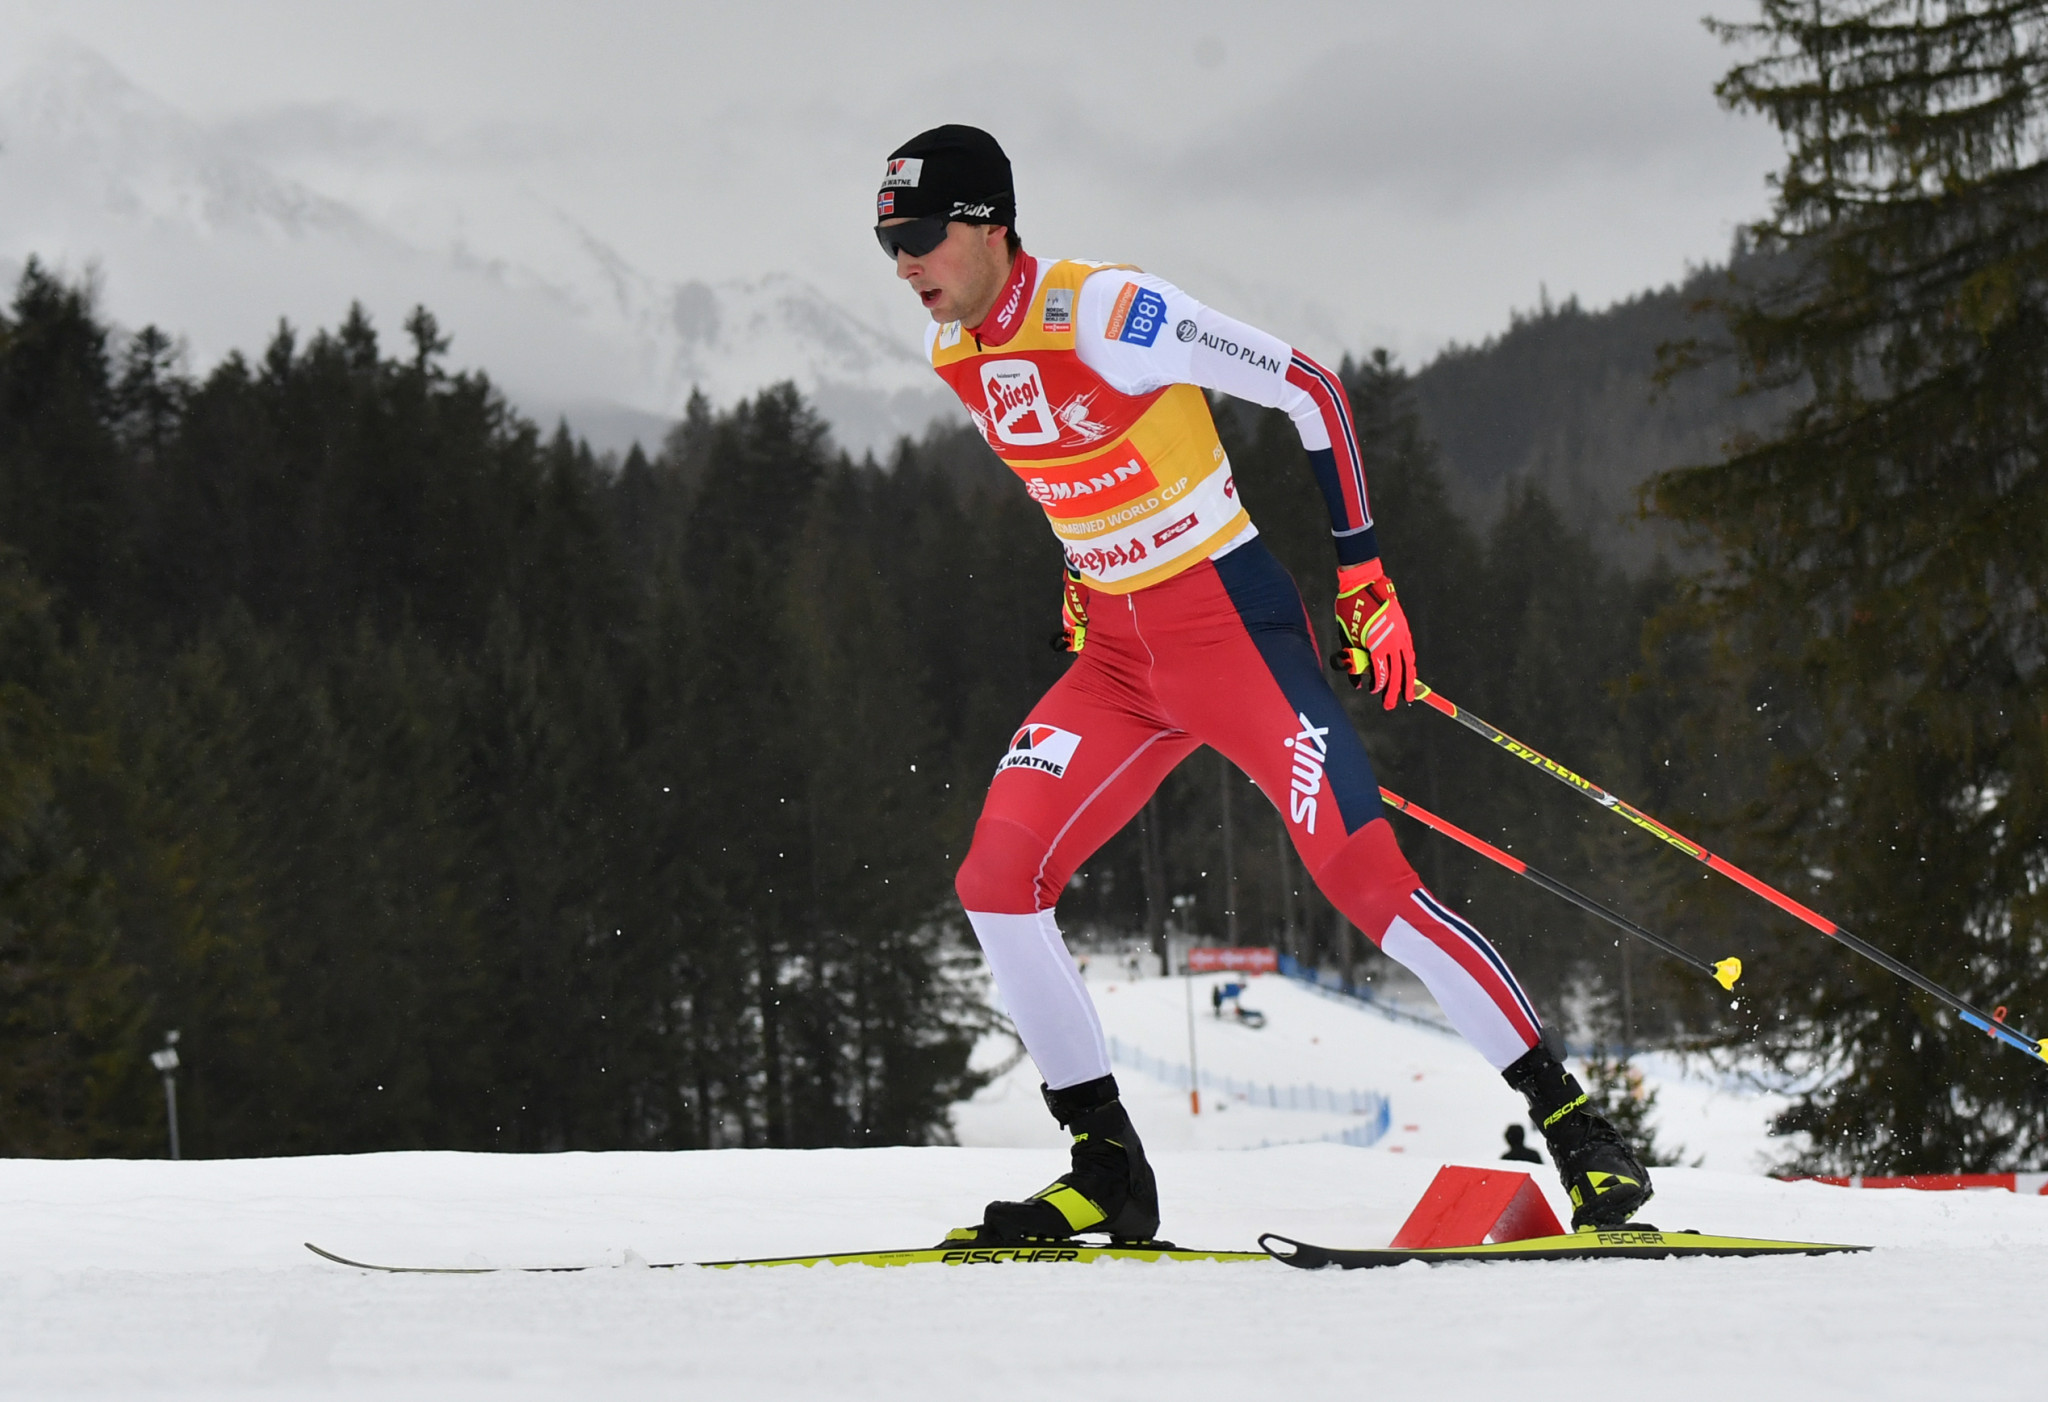 Nordic Combined World Cup event in Otepää cancelled due to warm weather